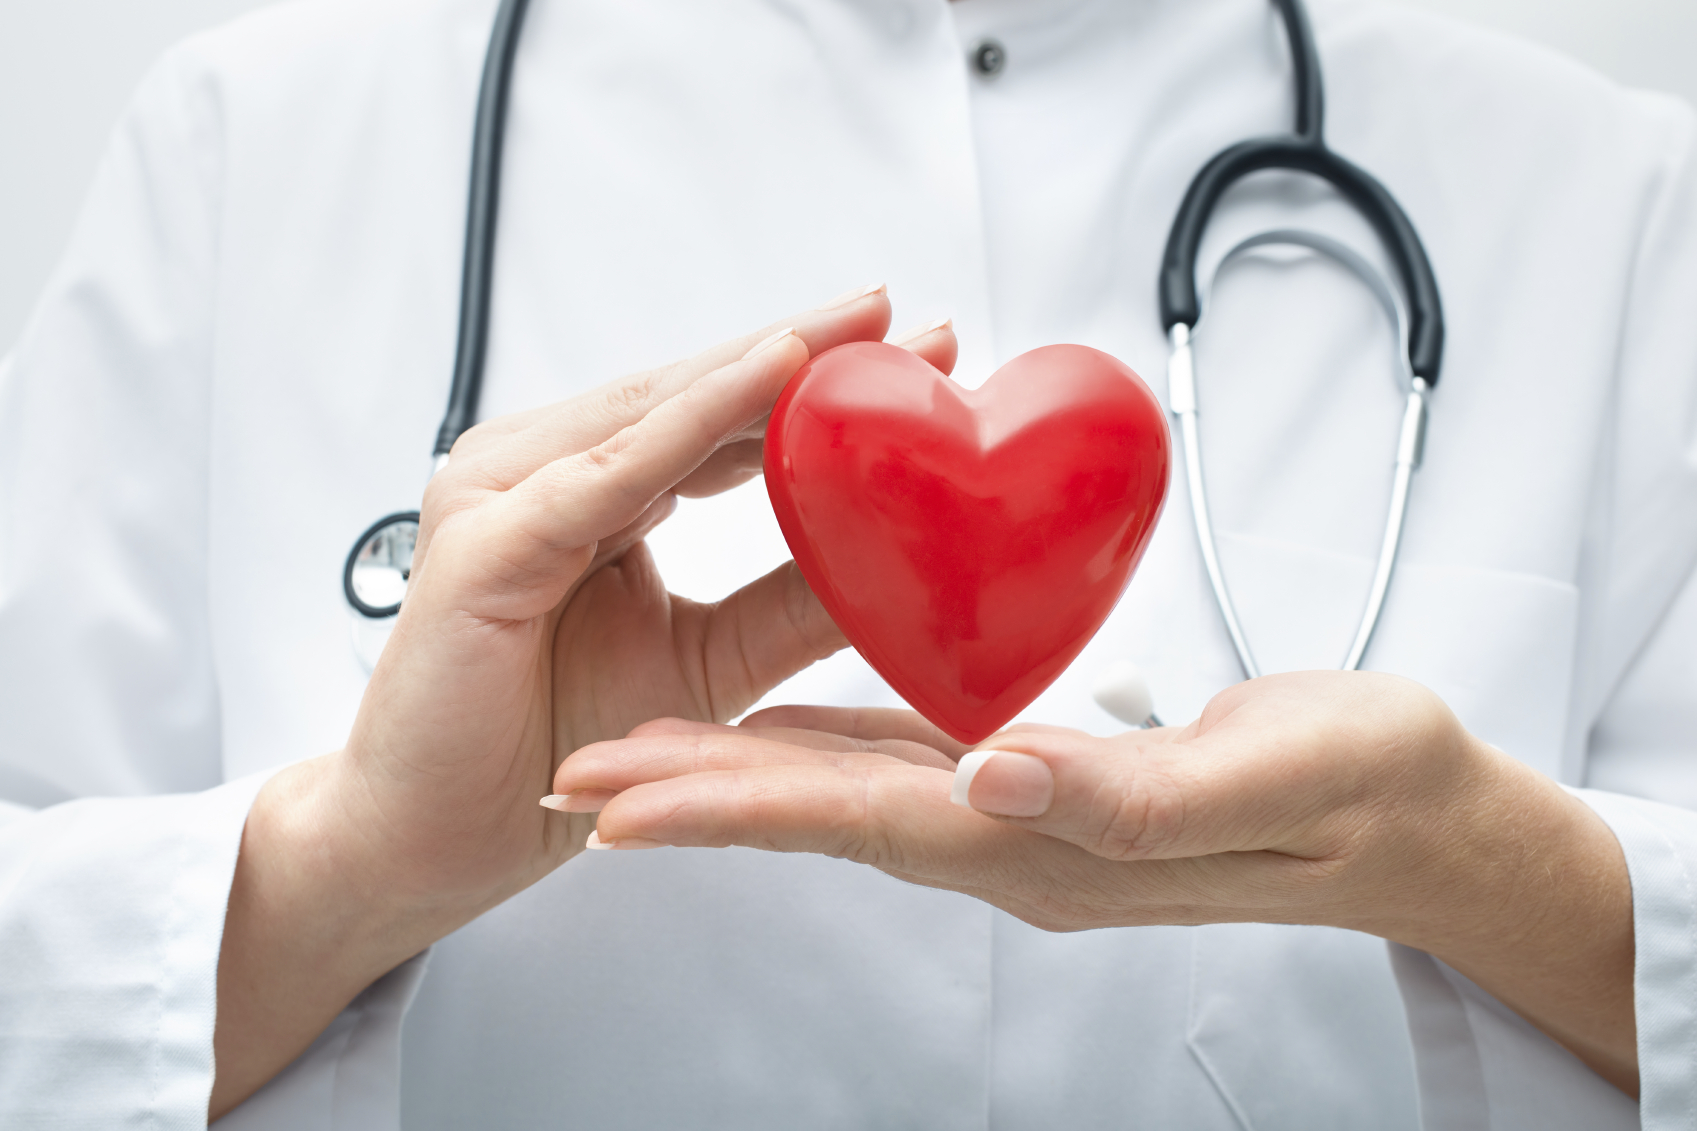 Don't believe the bad press about niacin. The new study is misleading. And mainstream news got it wrong. Here's the truth about niacin and your heart health.